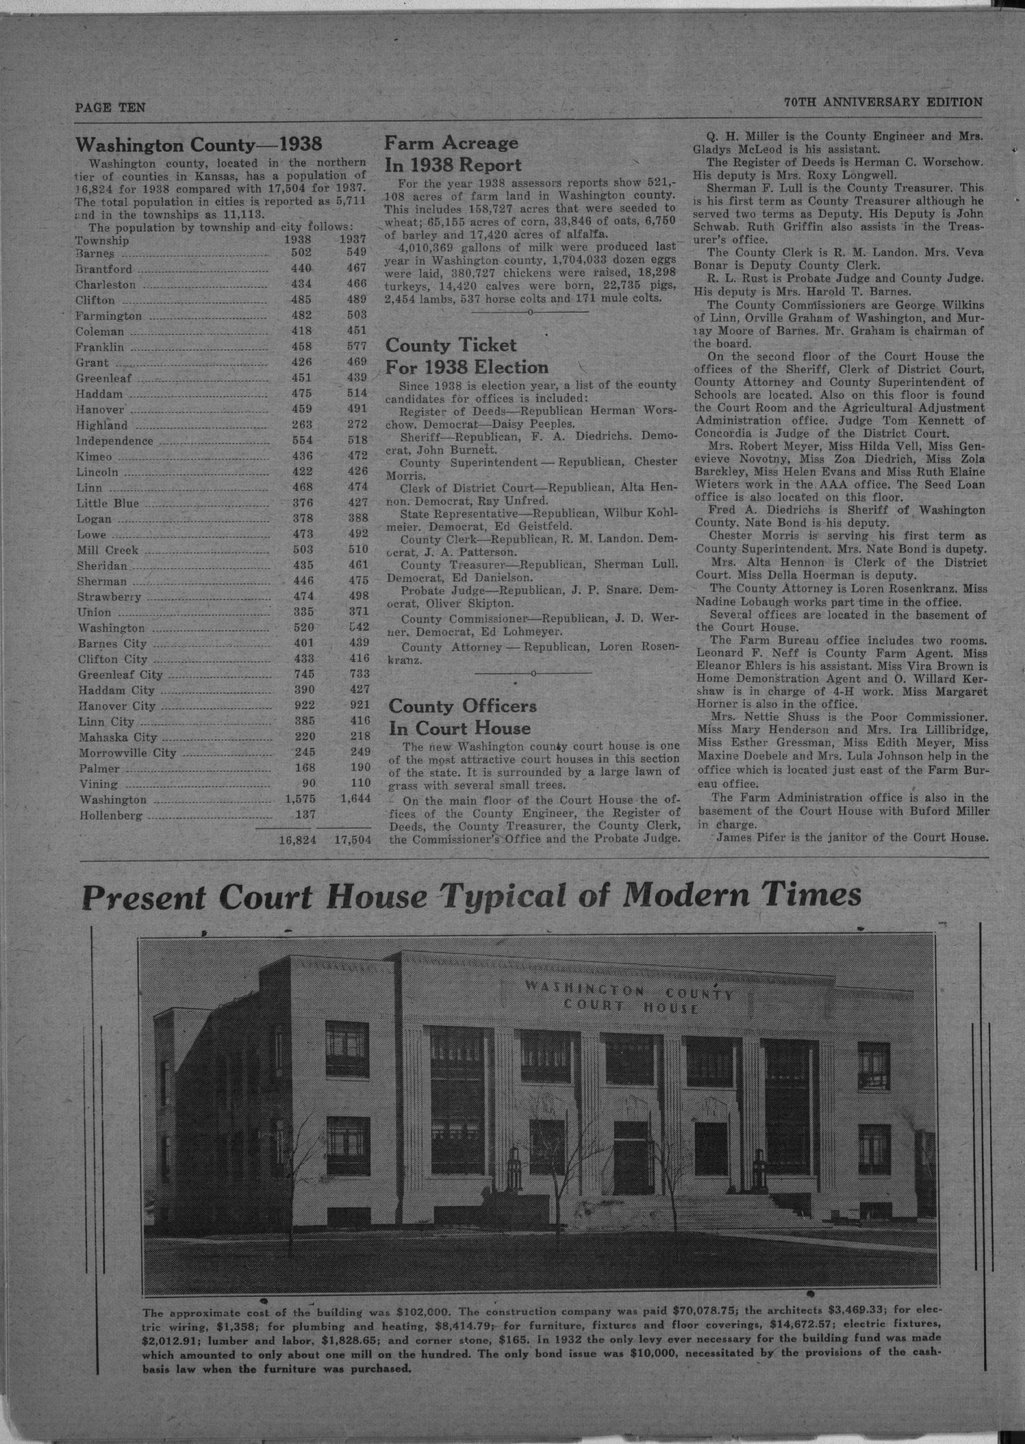 70th anniversary edition supplement to the Washington County Register - 10